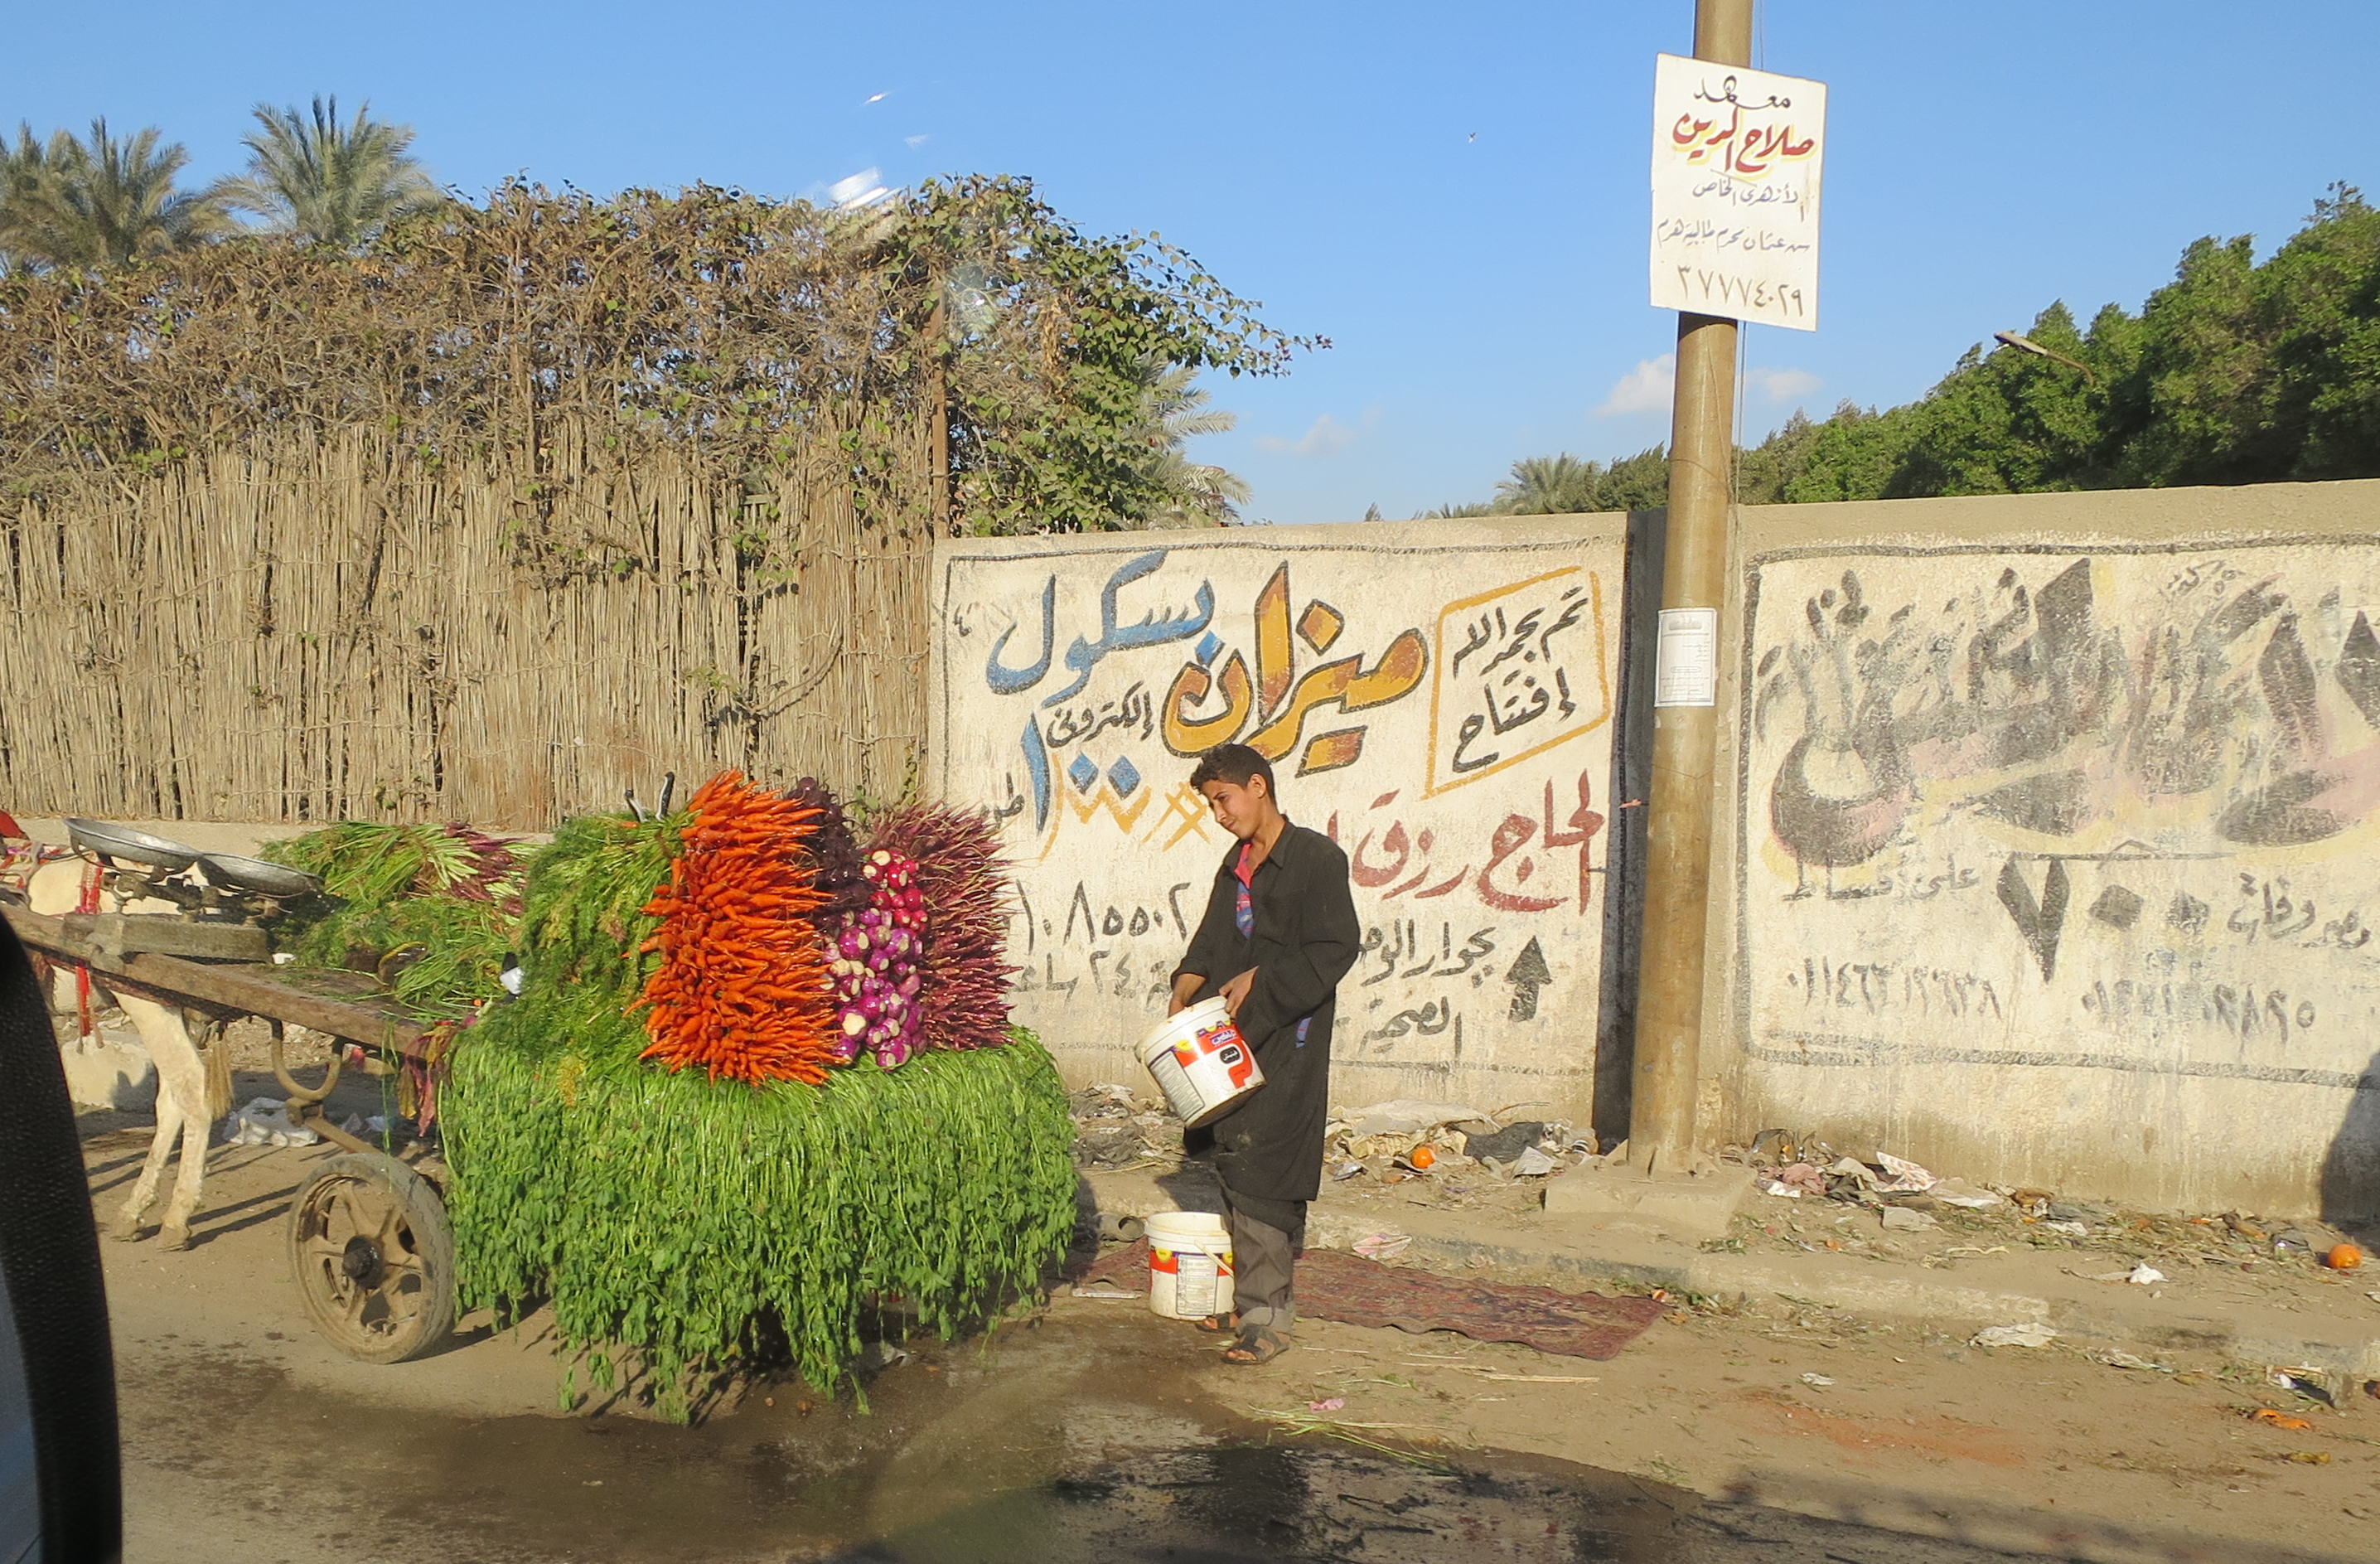 selling carrots and greens along the side of the road